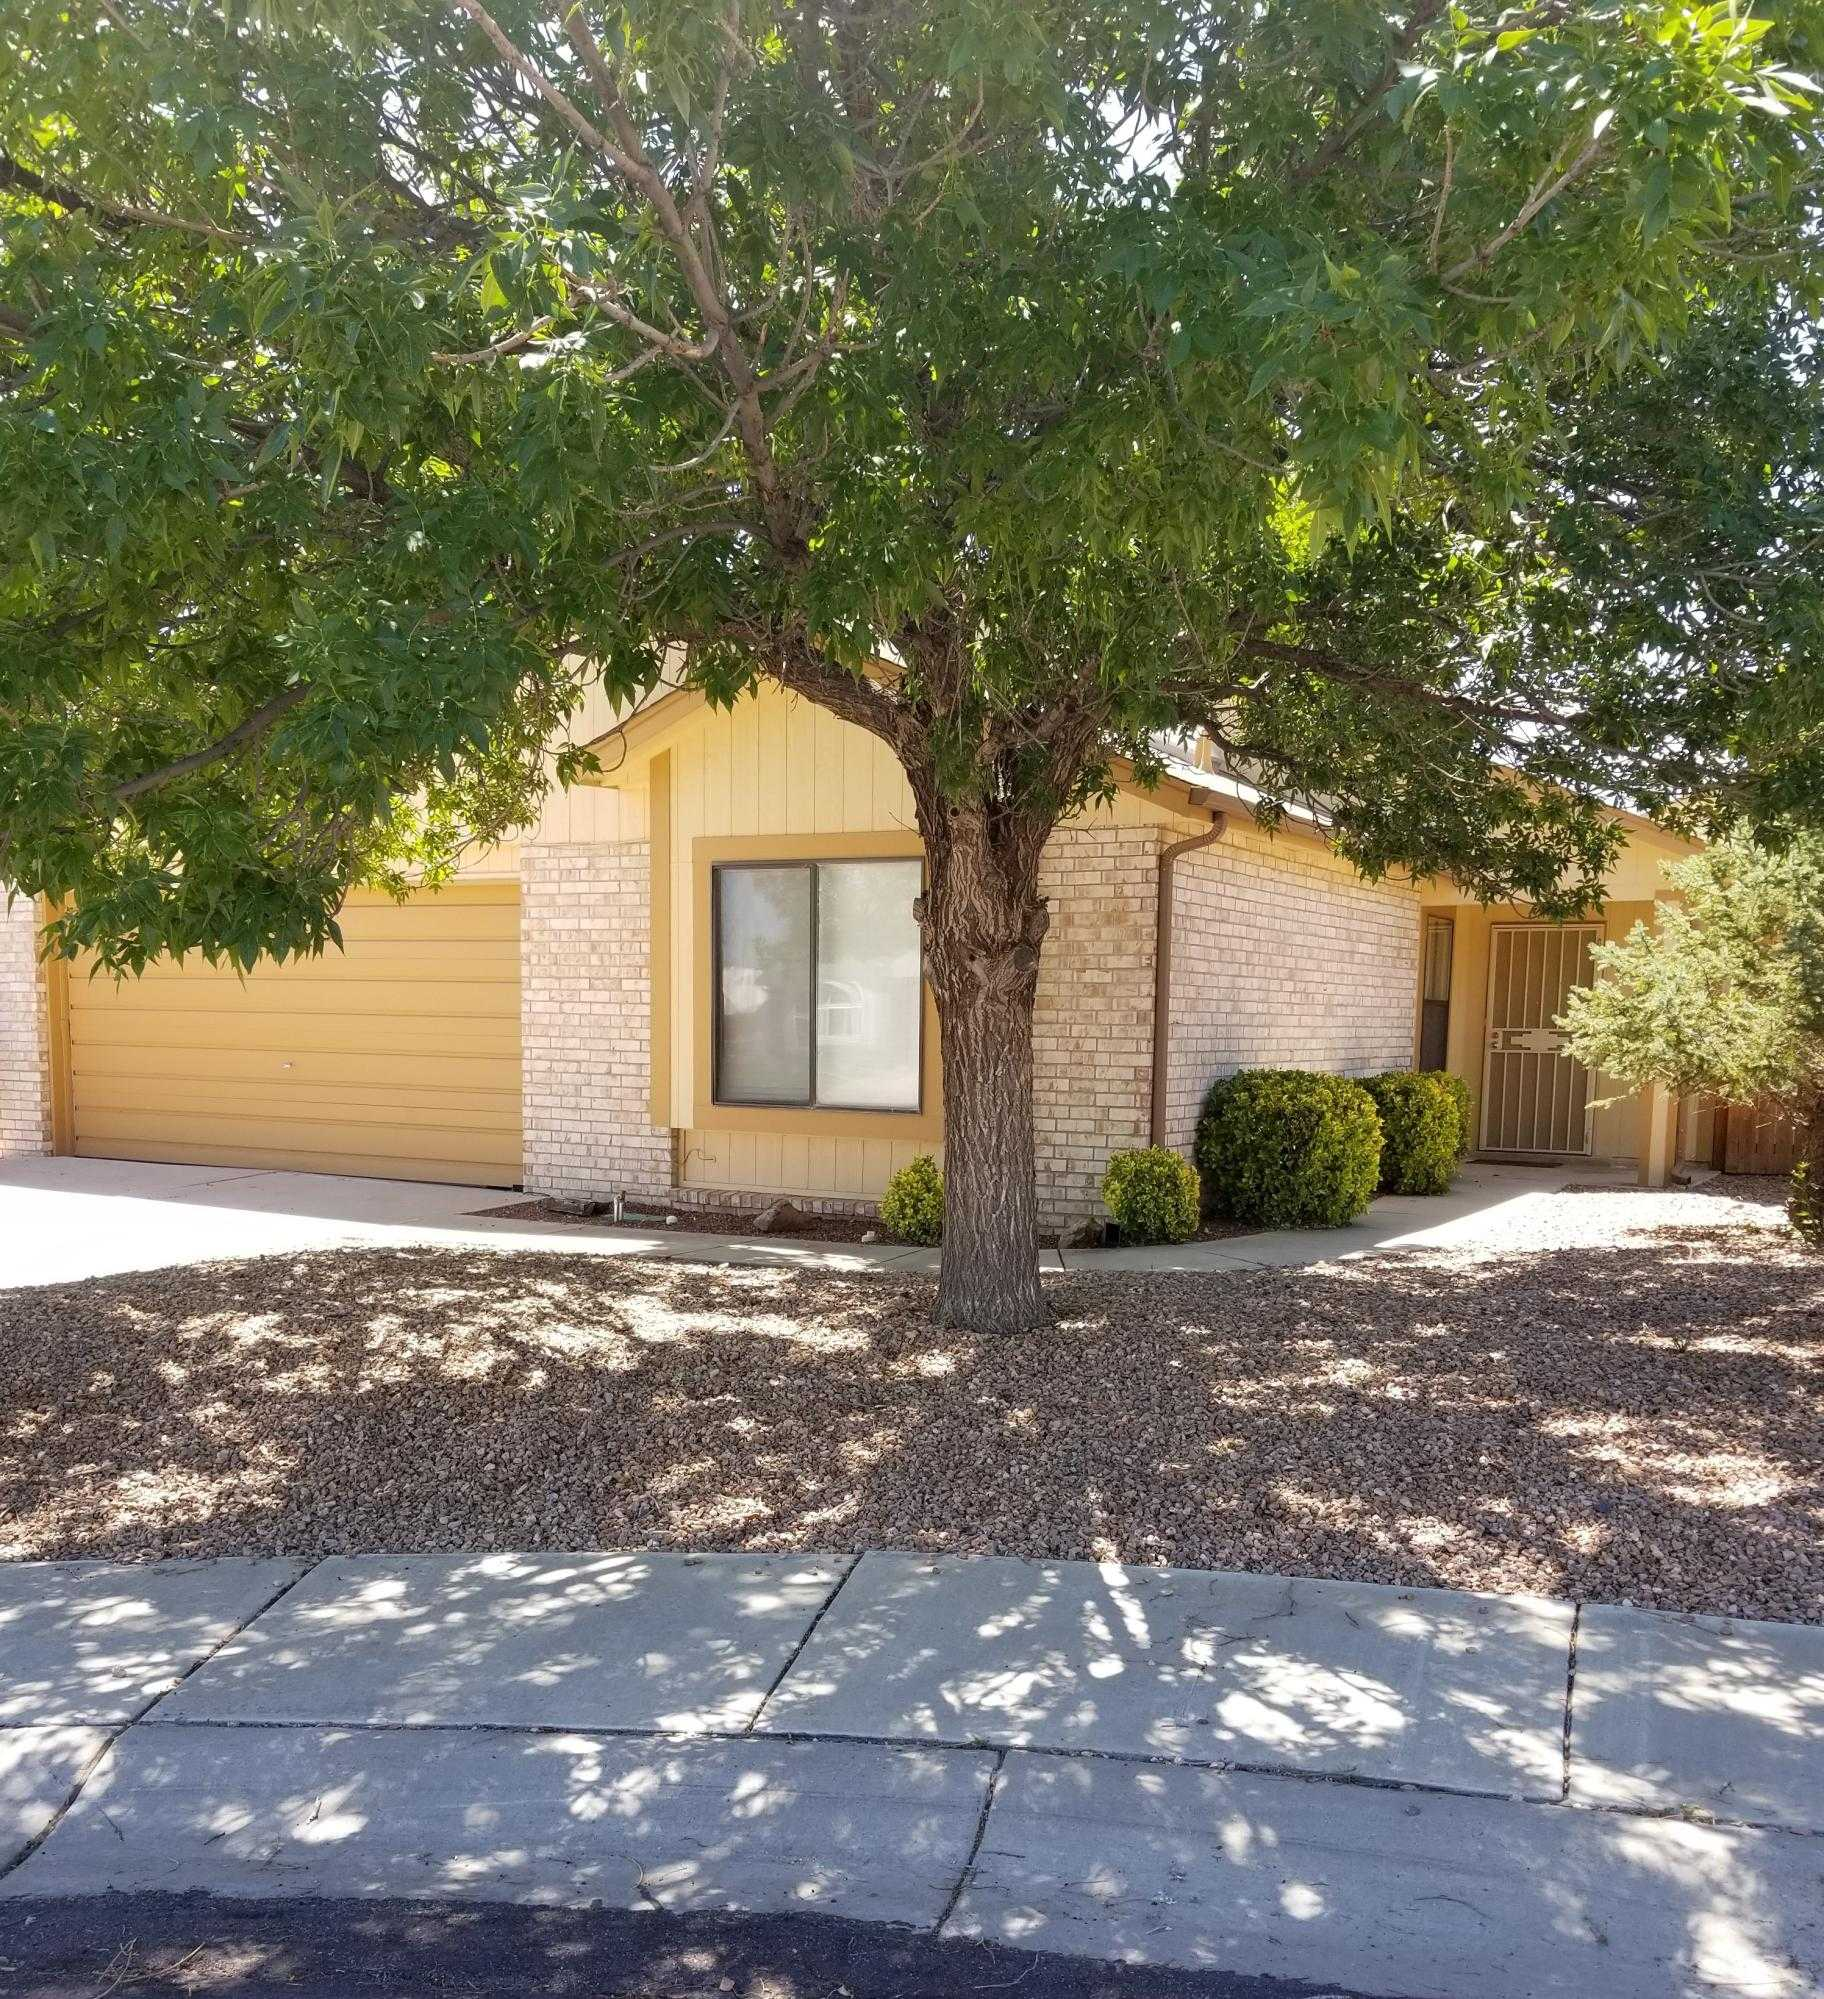 $199,900 - 3Br/2Ba -  for Sale in Ladera West, Albuquerque